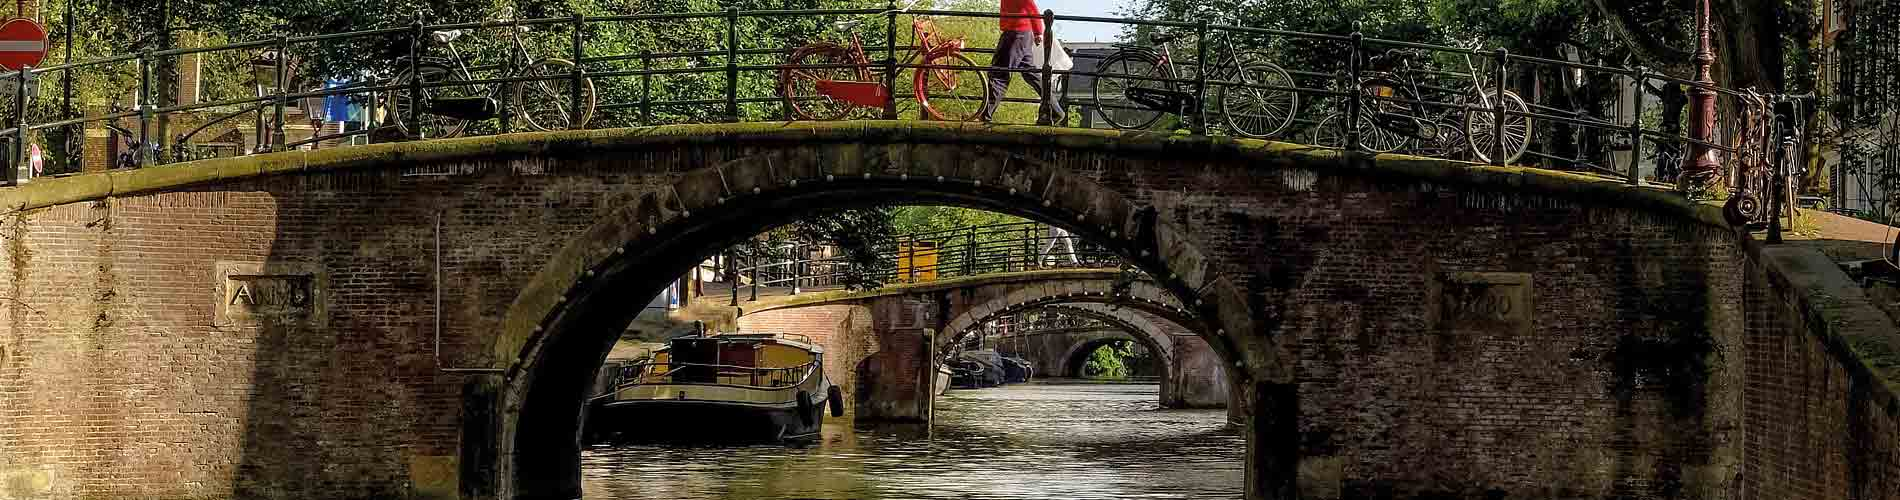 Blog_AmsterdamGuide_CanalCruise_1900x500_Q120